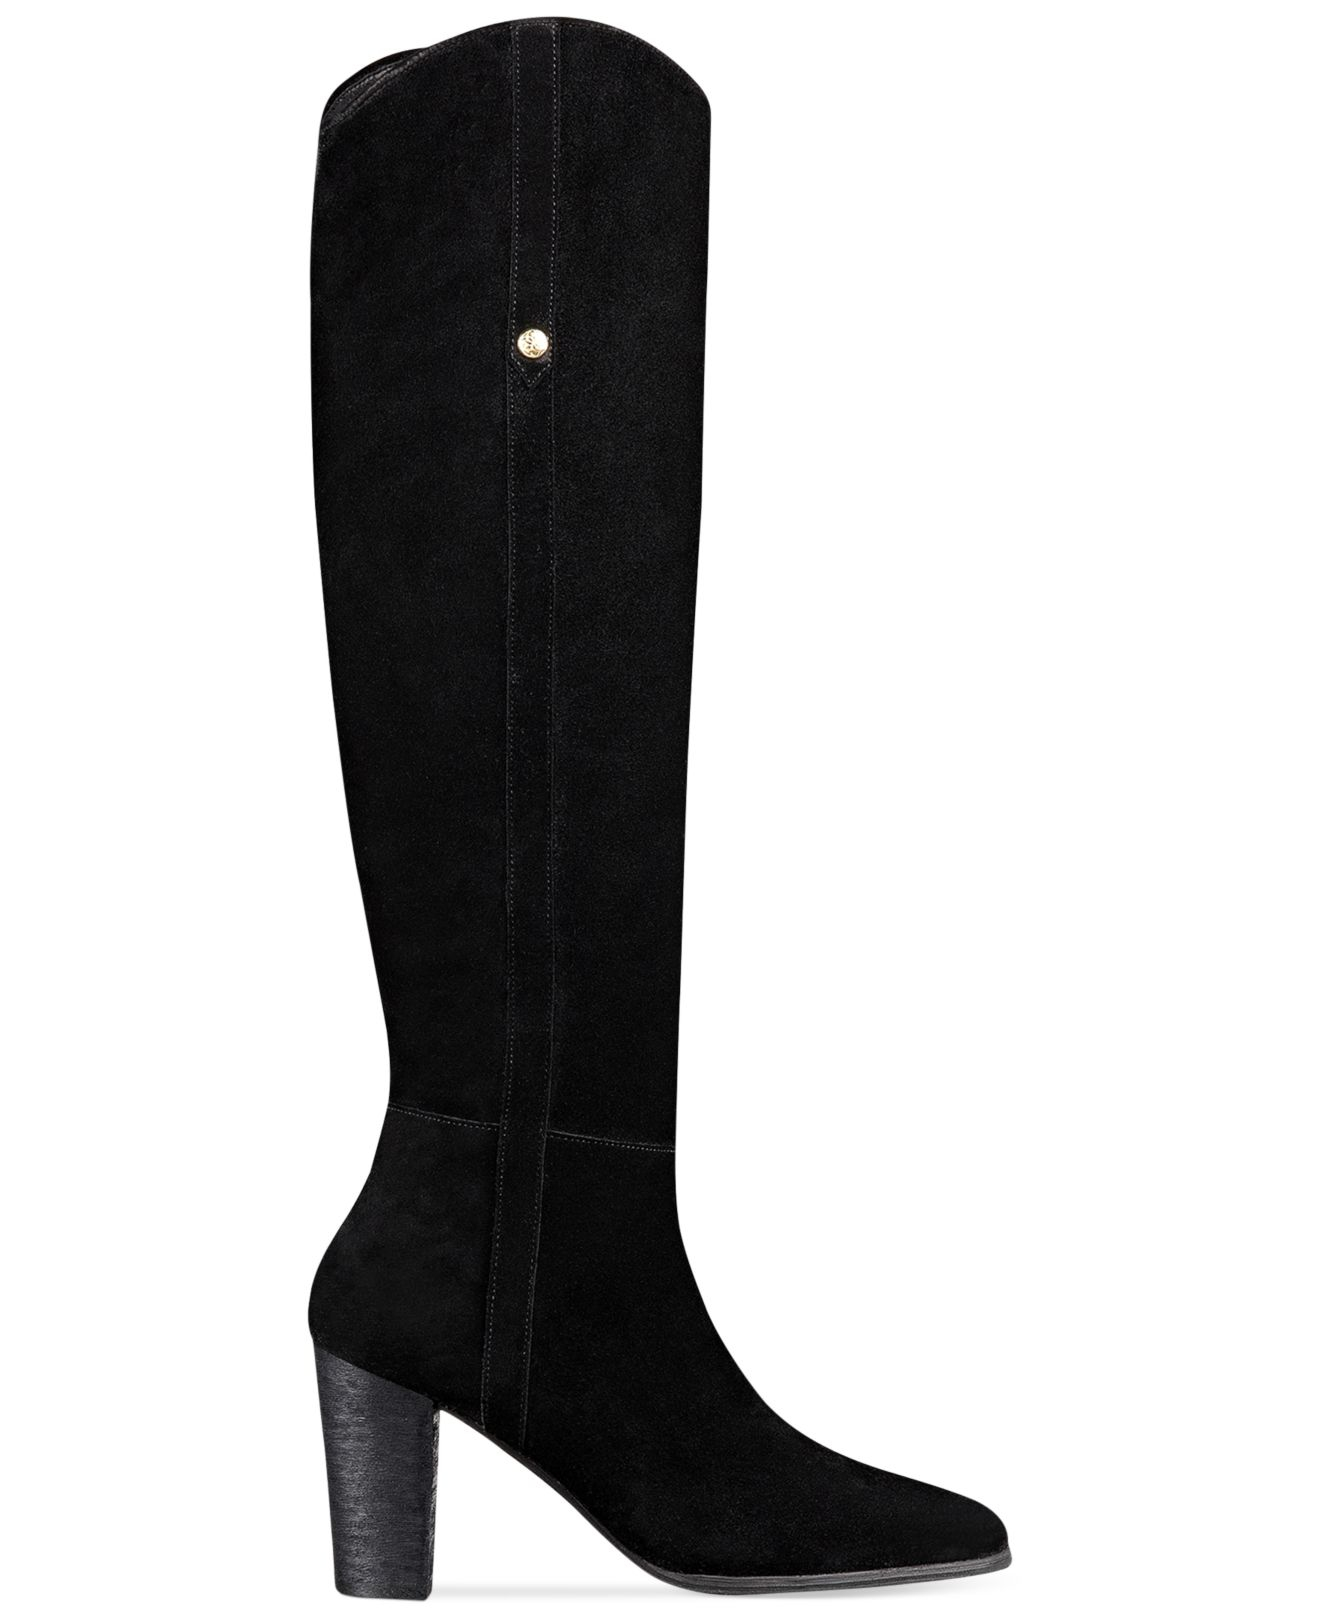 guess s honon suede boots in black black suede